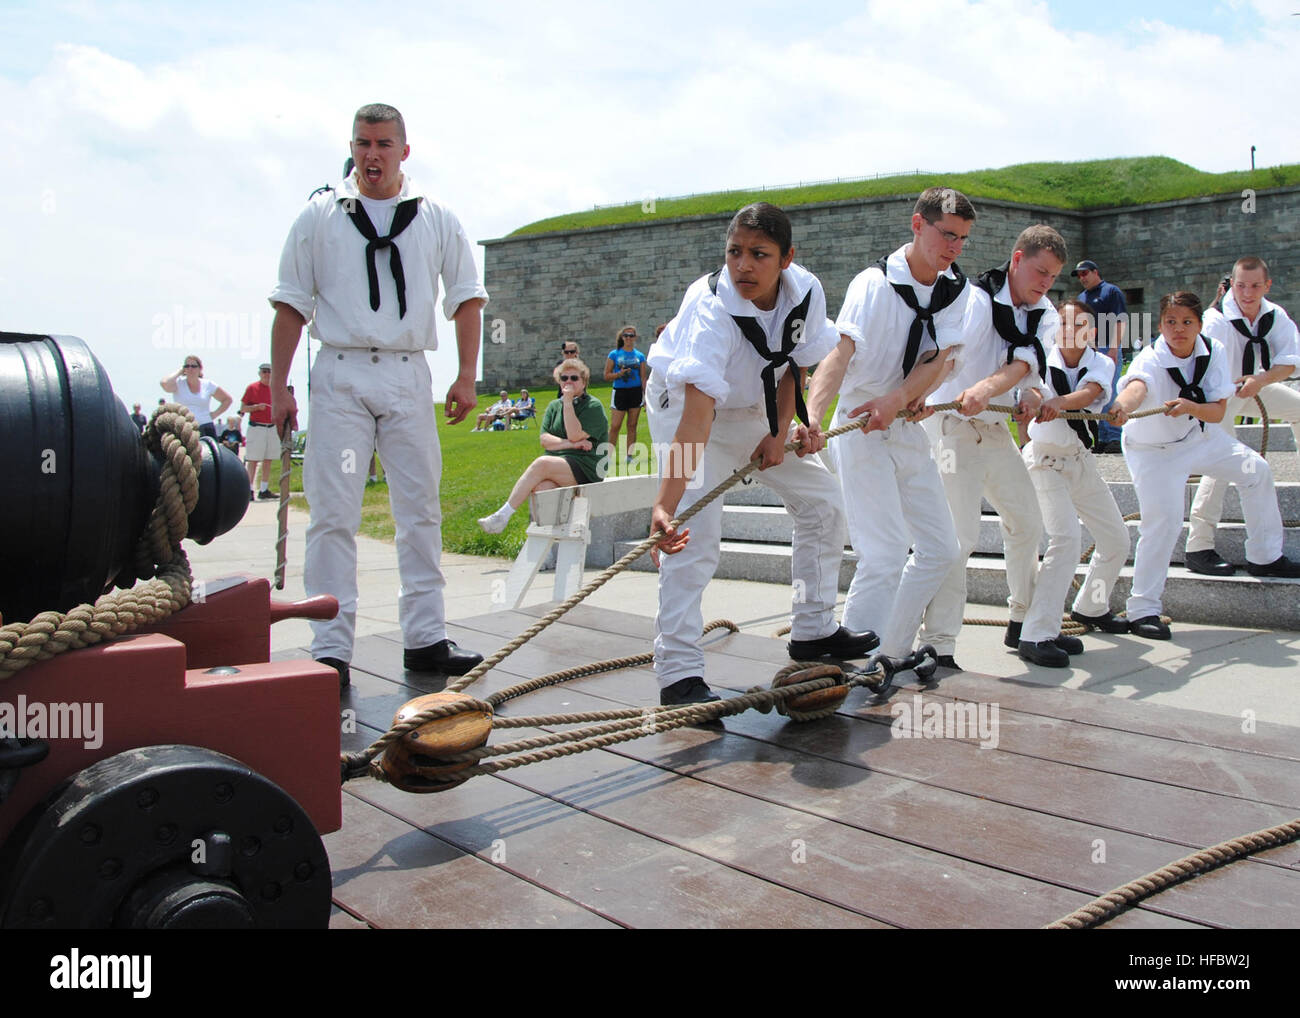 110529-N-AU127-183  BOSTON (May 29, 2011) Sailors assigned to USS Constitution perform War of 1812-era gun drills - Stock Image